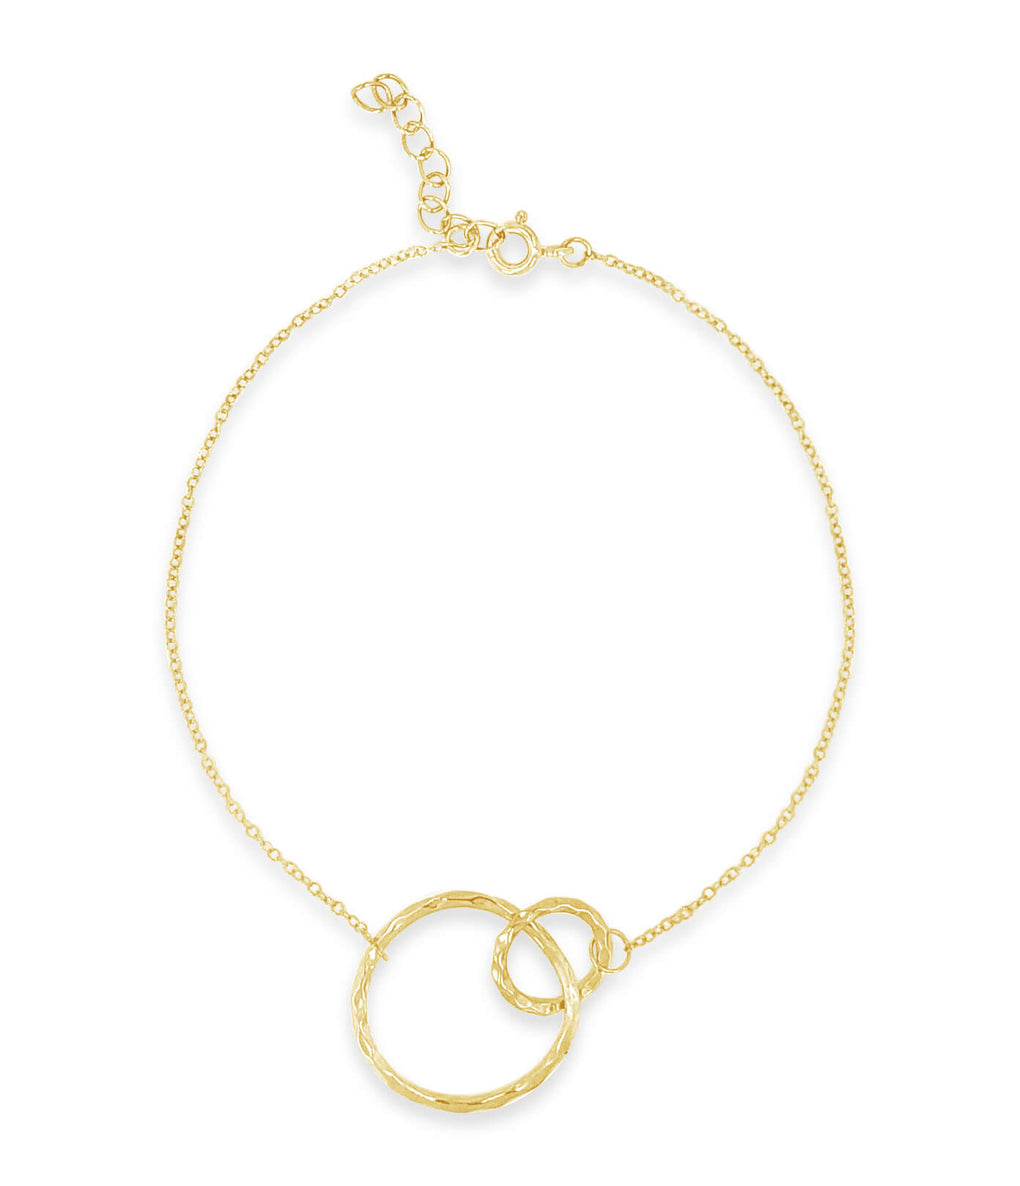 Two circle bracelet in yellow gold | Little Sparkles Jewelry